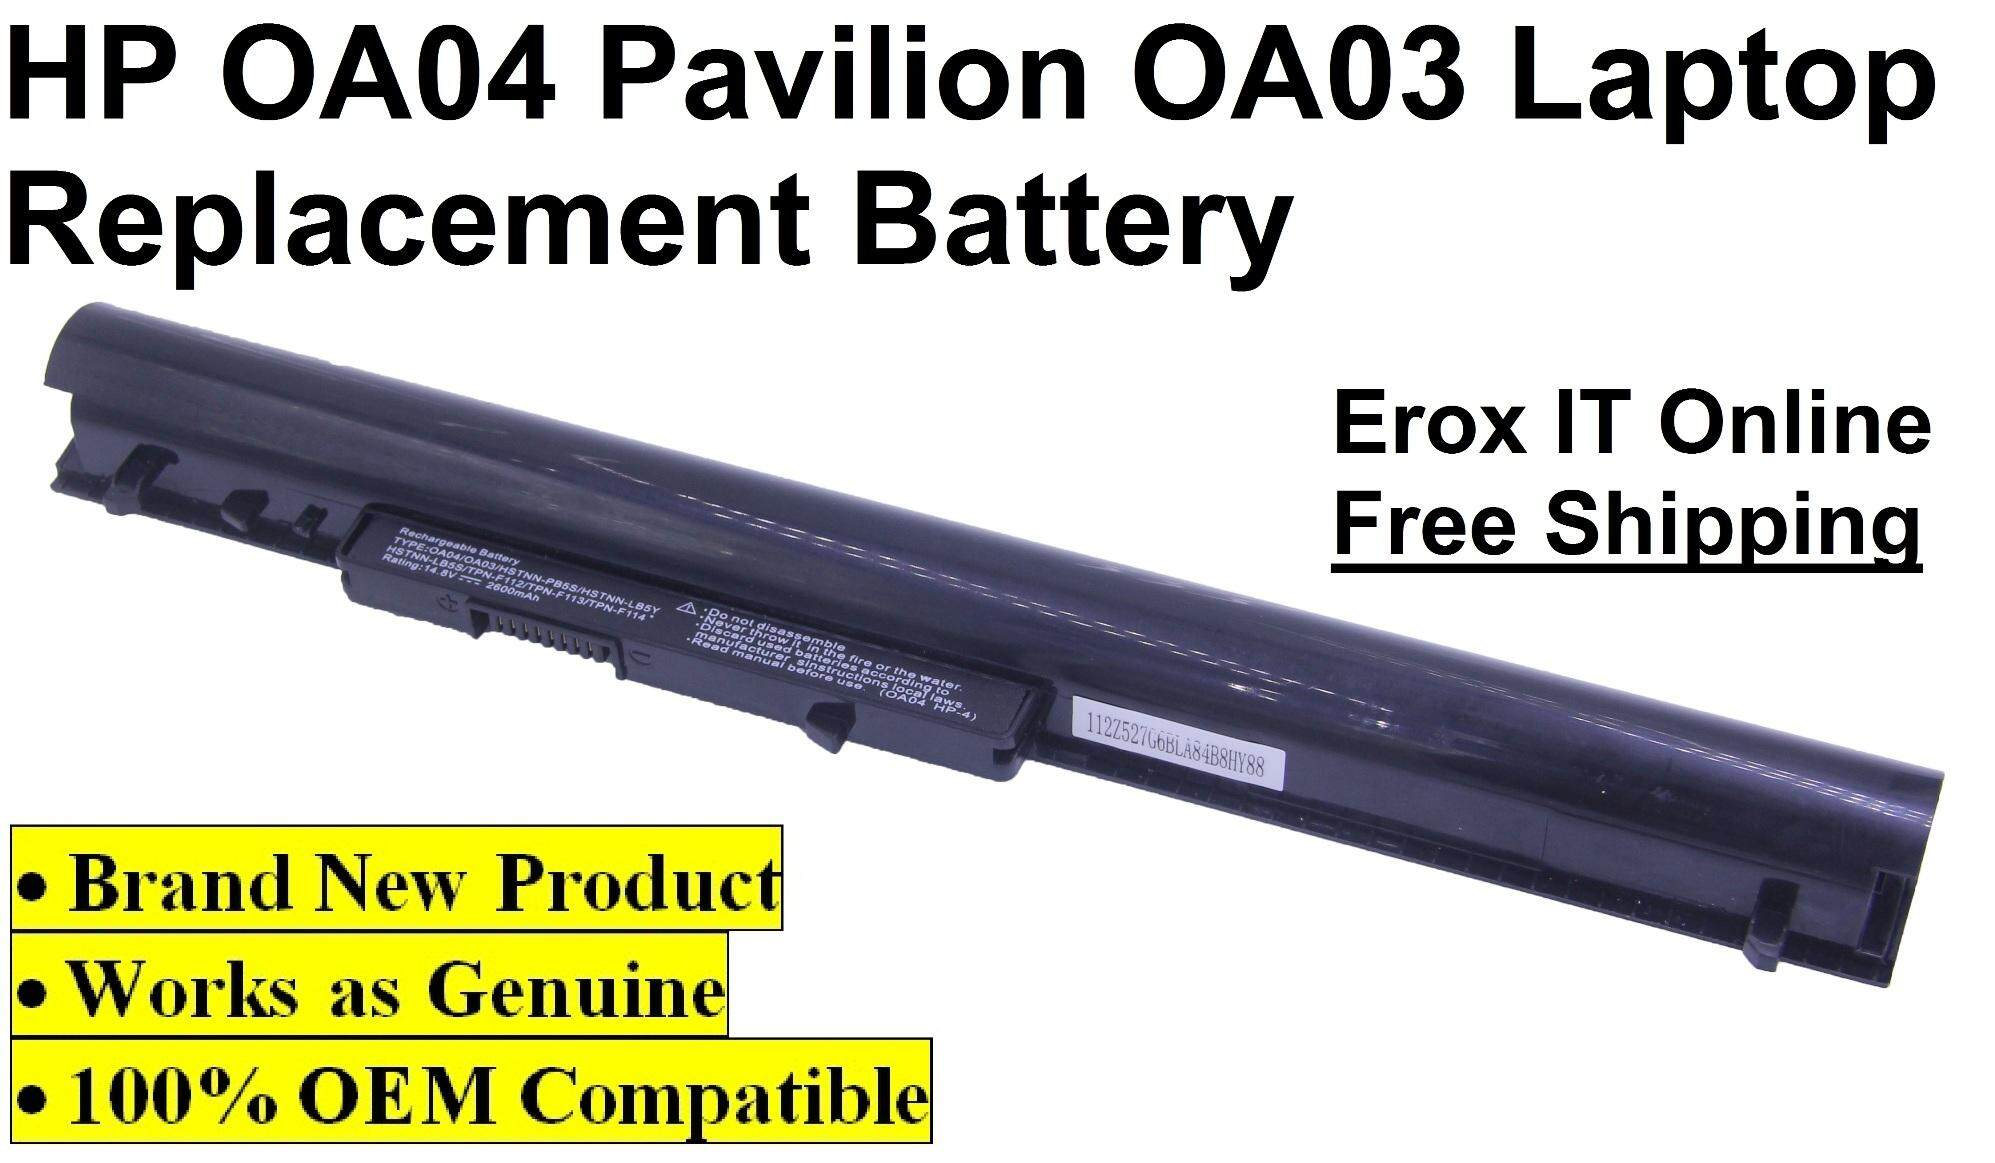 OEM Replacement Laptop Battery for HP Pavilion 14-R036TU /OA04 Battery Malaysia